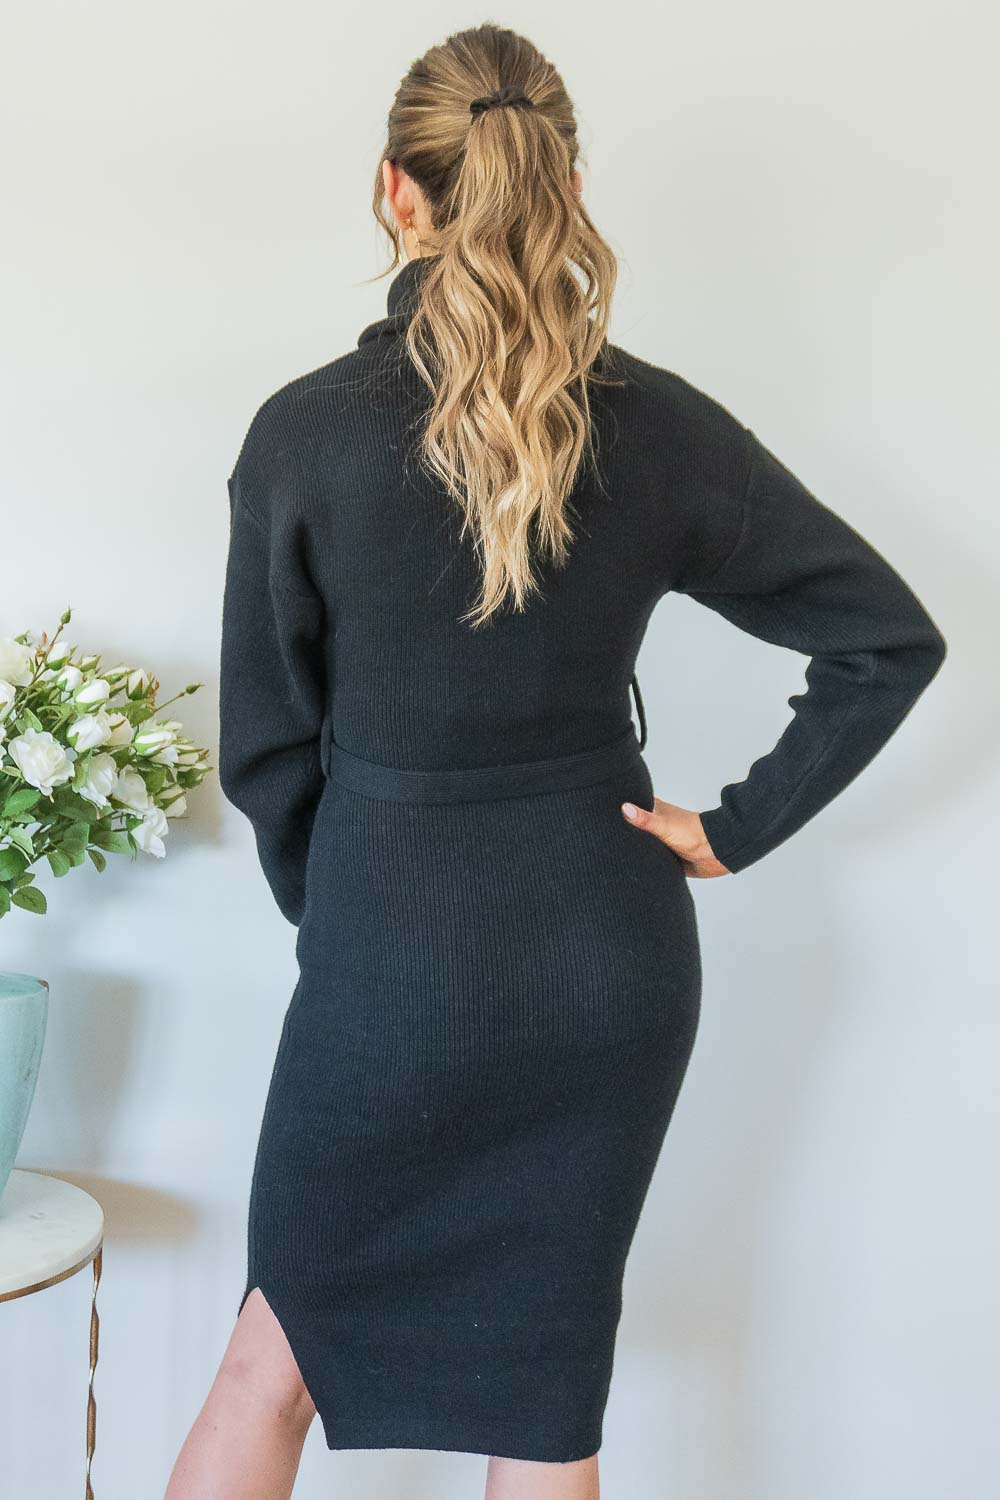 Sansa Dress in Black Knit